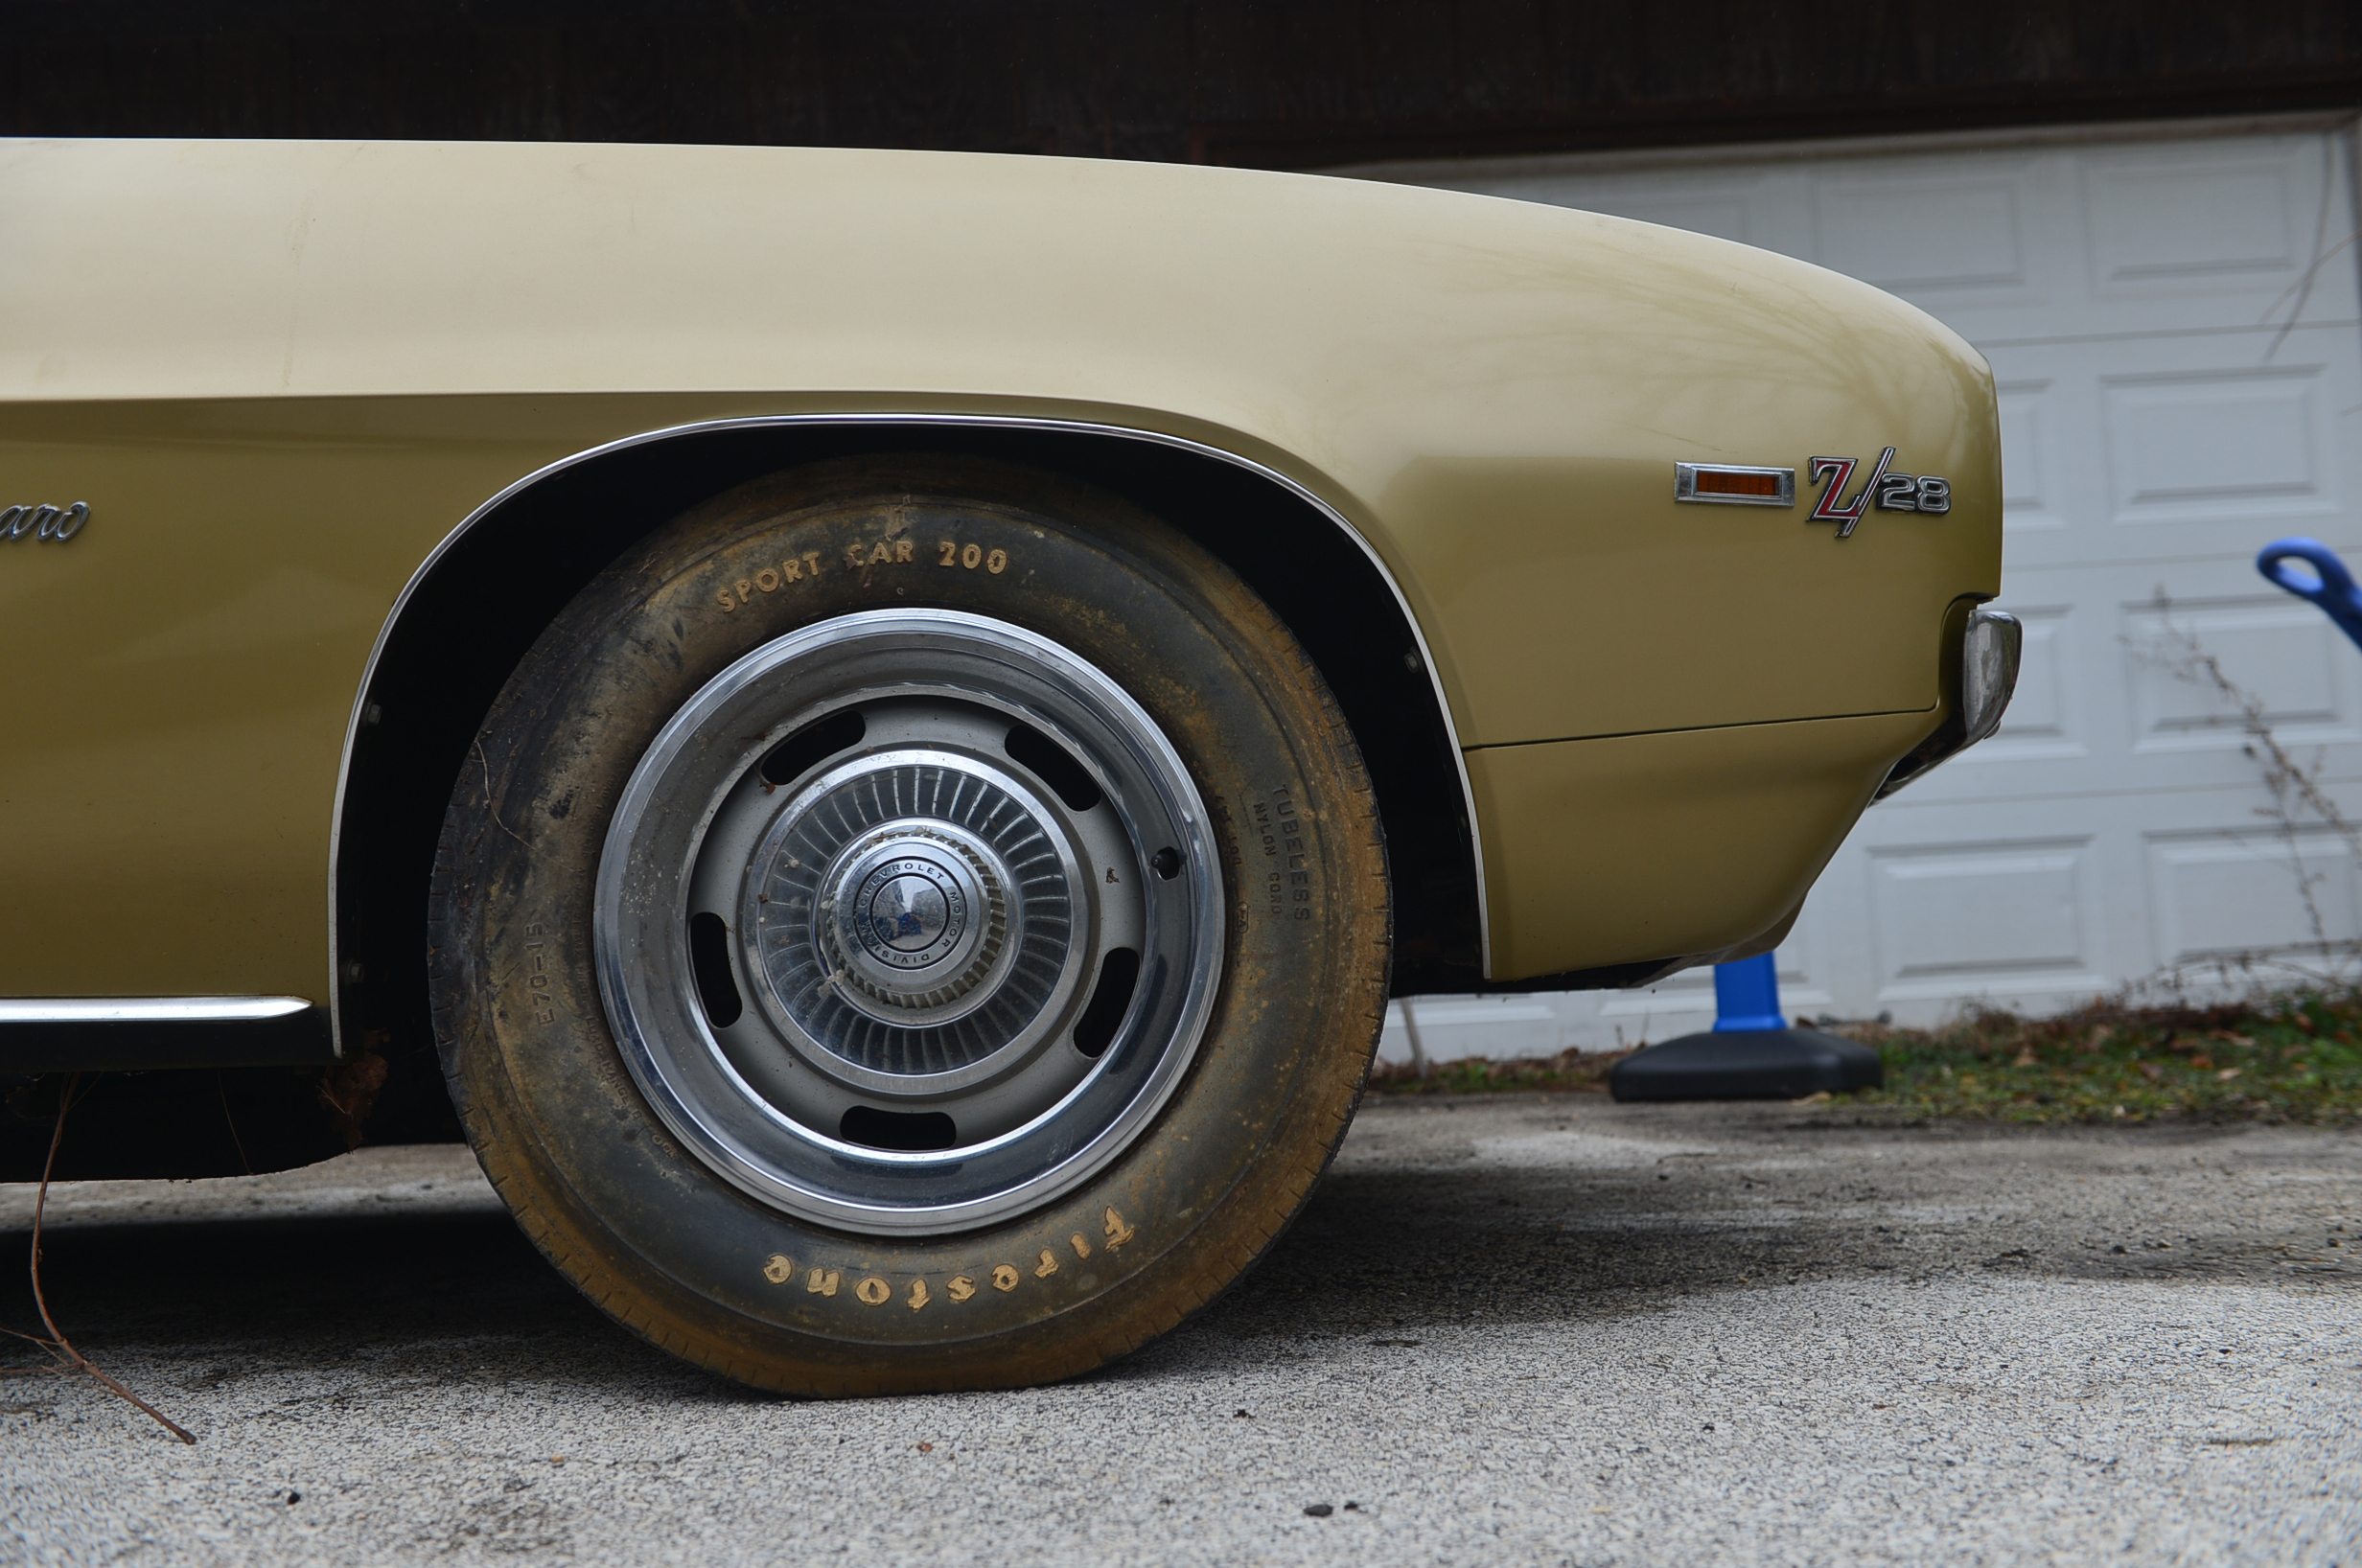 Leonard had the foresight to keep the original Sports Car 200 tires that were on the car when he took delivery in 1969.